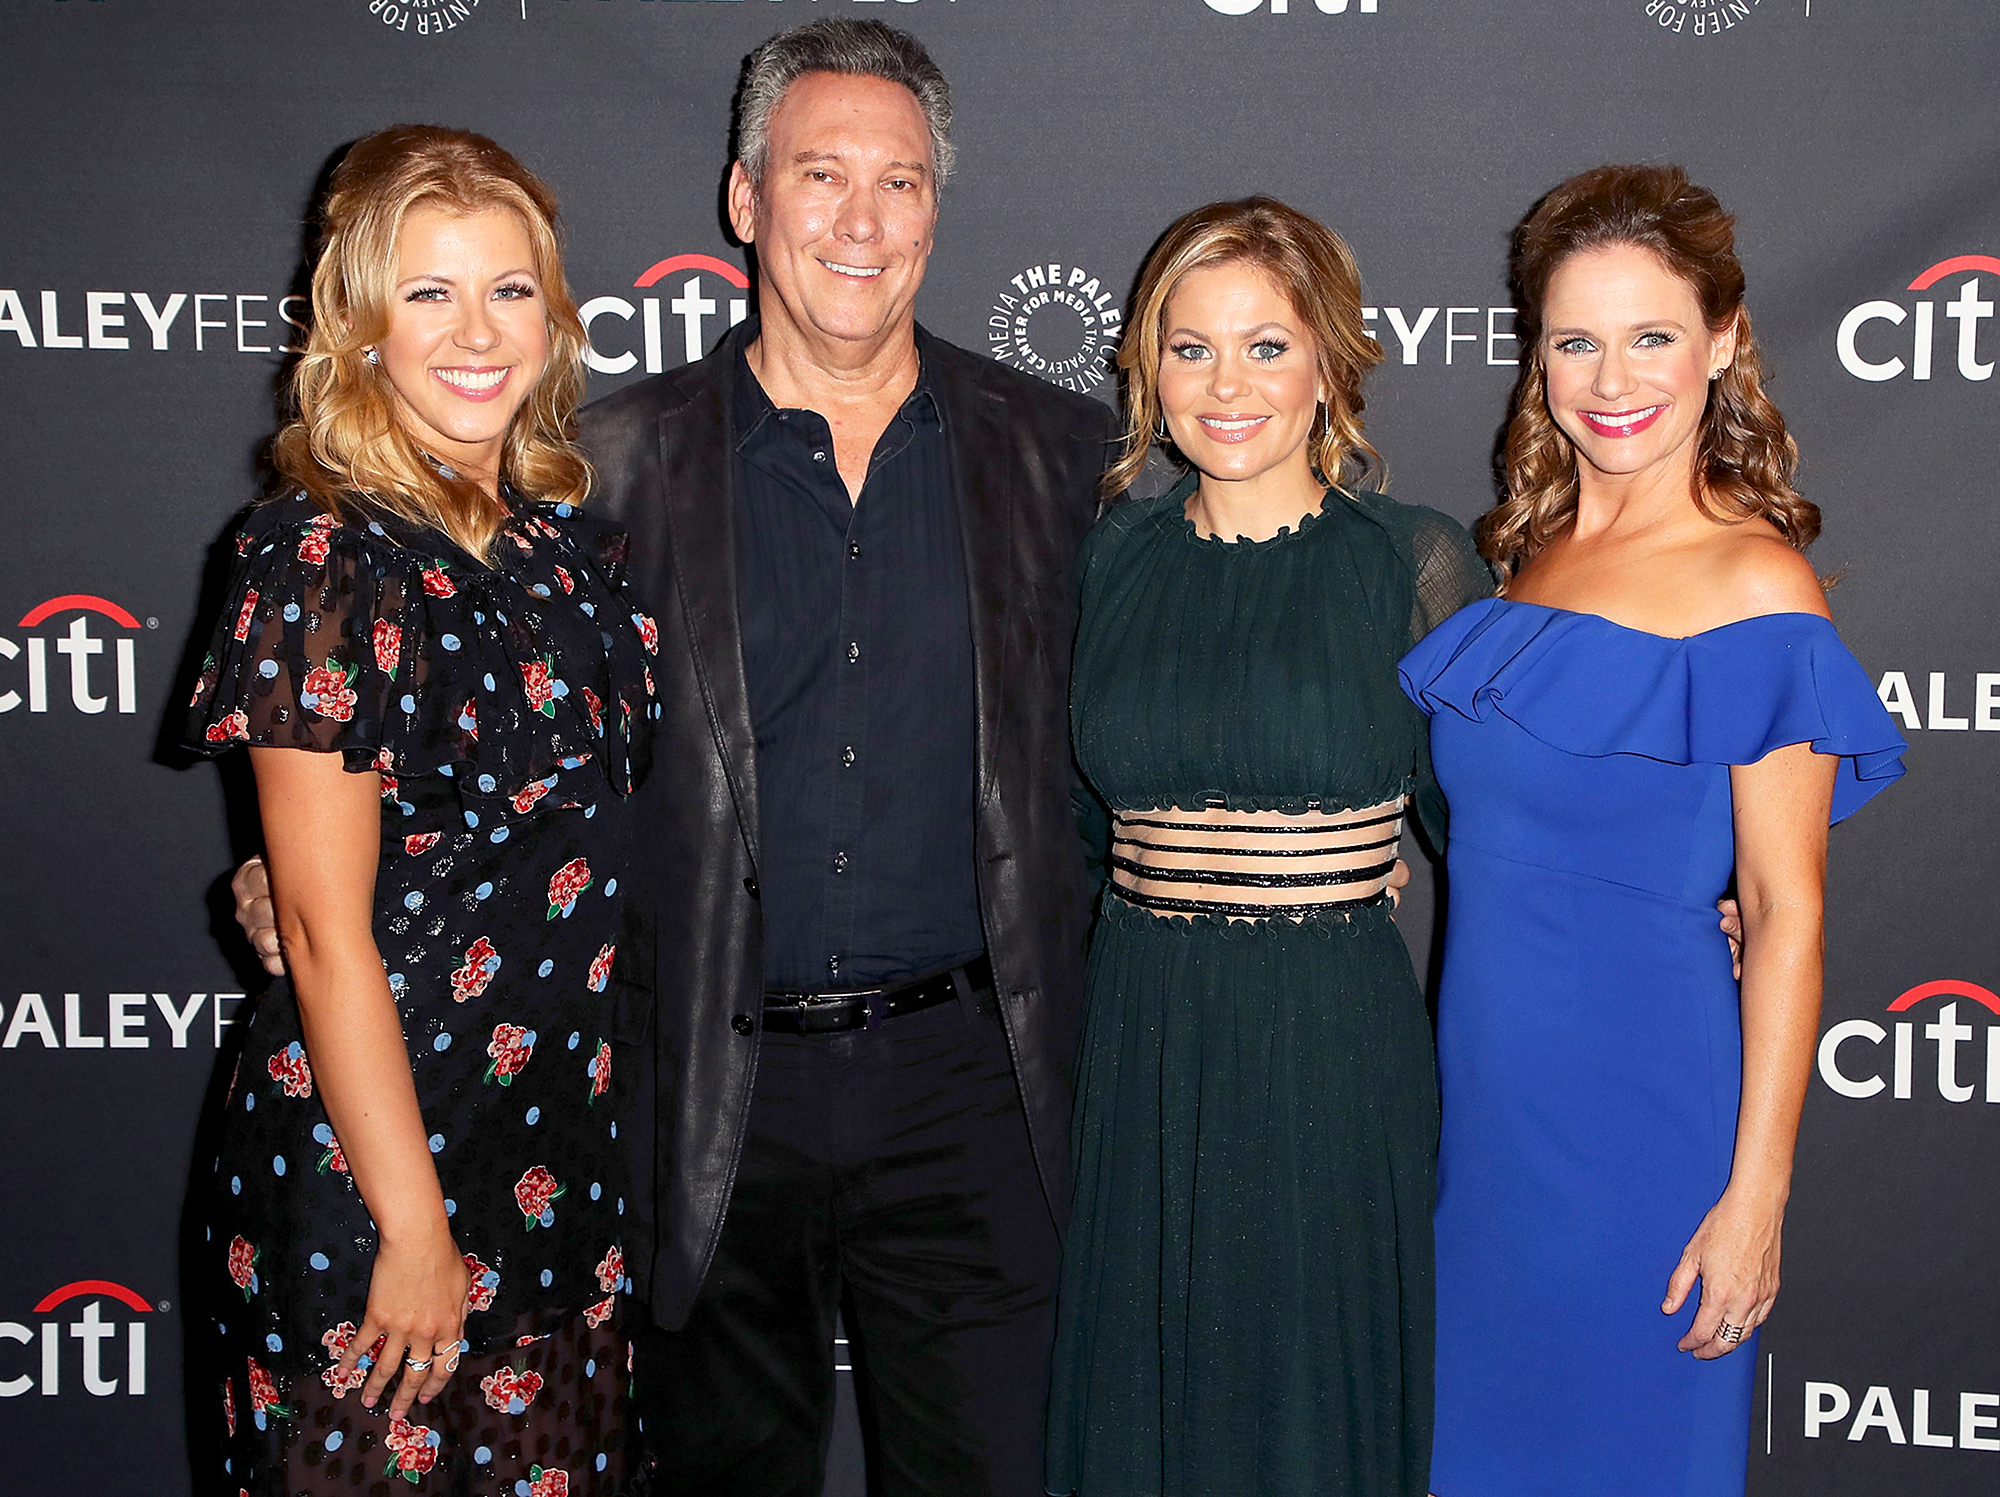 Fuller House Creator I Stopped Asking Olsen Twins To Make Cameo